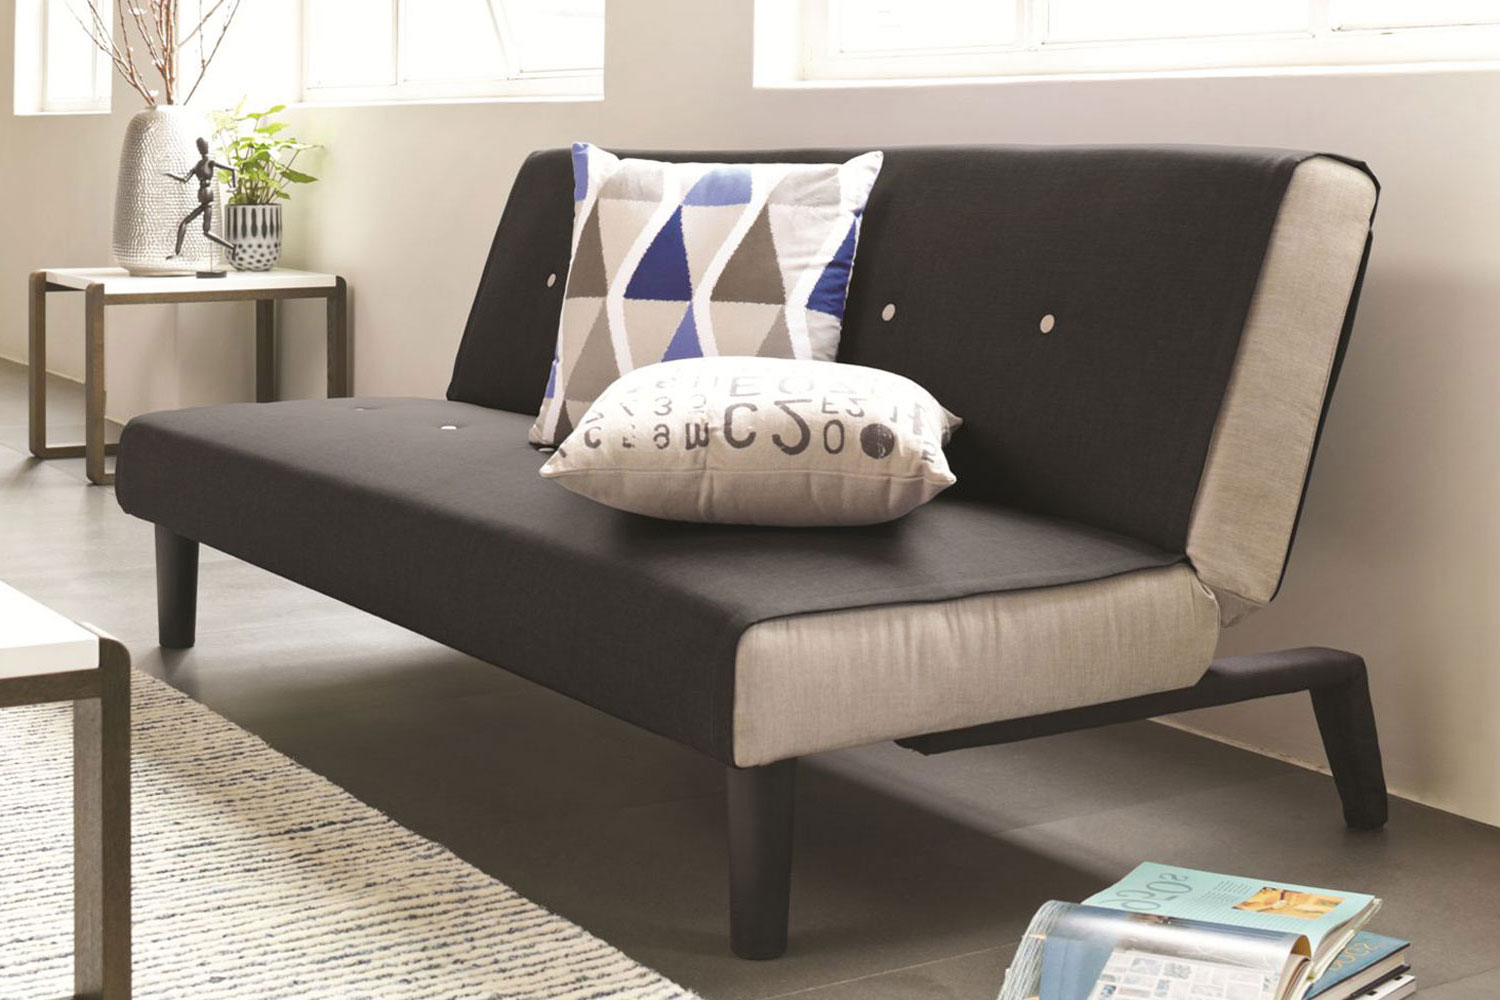 Oslo Ecksofa Oslo Sofa Bed Black